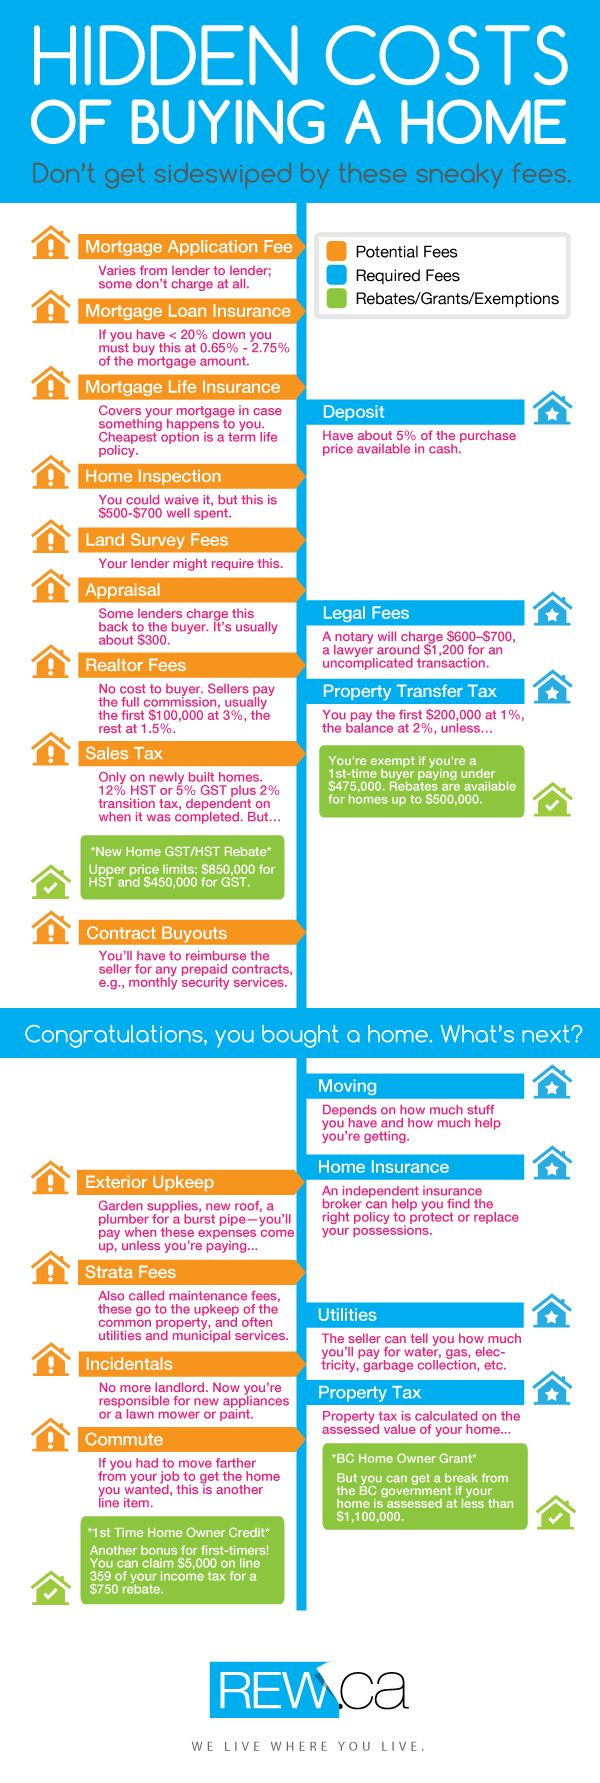 You've Saved Up A Down Payment, You're Pre-Approved For A #Mortgage, You've Found A Place You Love. Now, HEADS UP! There'll Be All Sorts Of Extra Fees and Charges Coming At You. With This Handy Chart You'll Be Prepared For The Hidden Costs That Come With Buying A #Home.  -Review Journal  #HomeBuyingTips